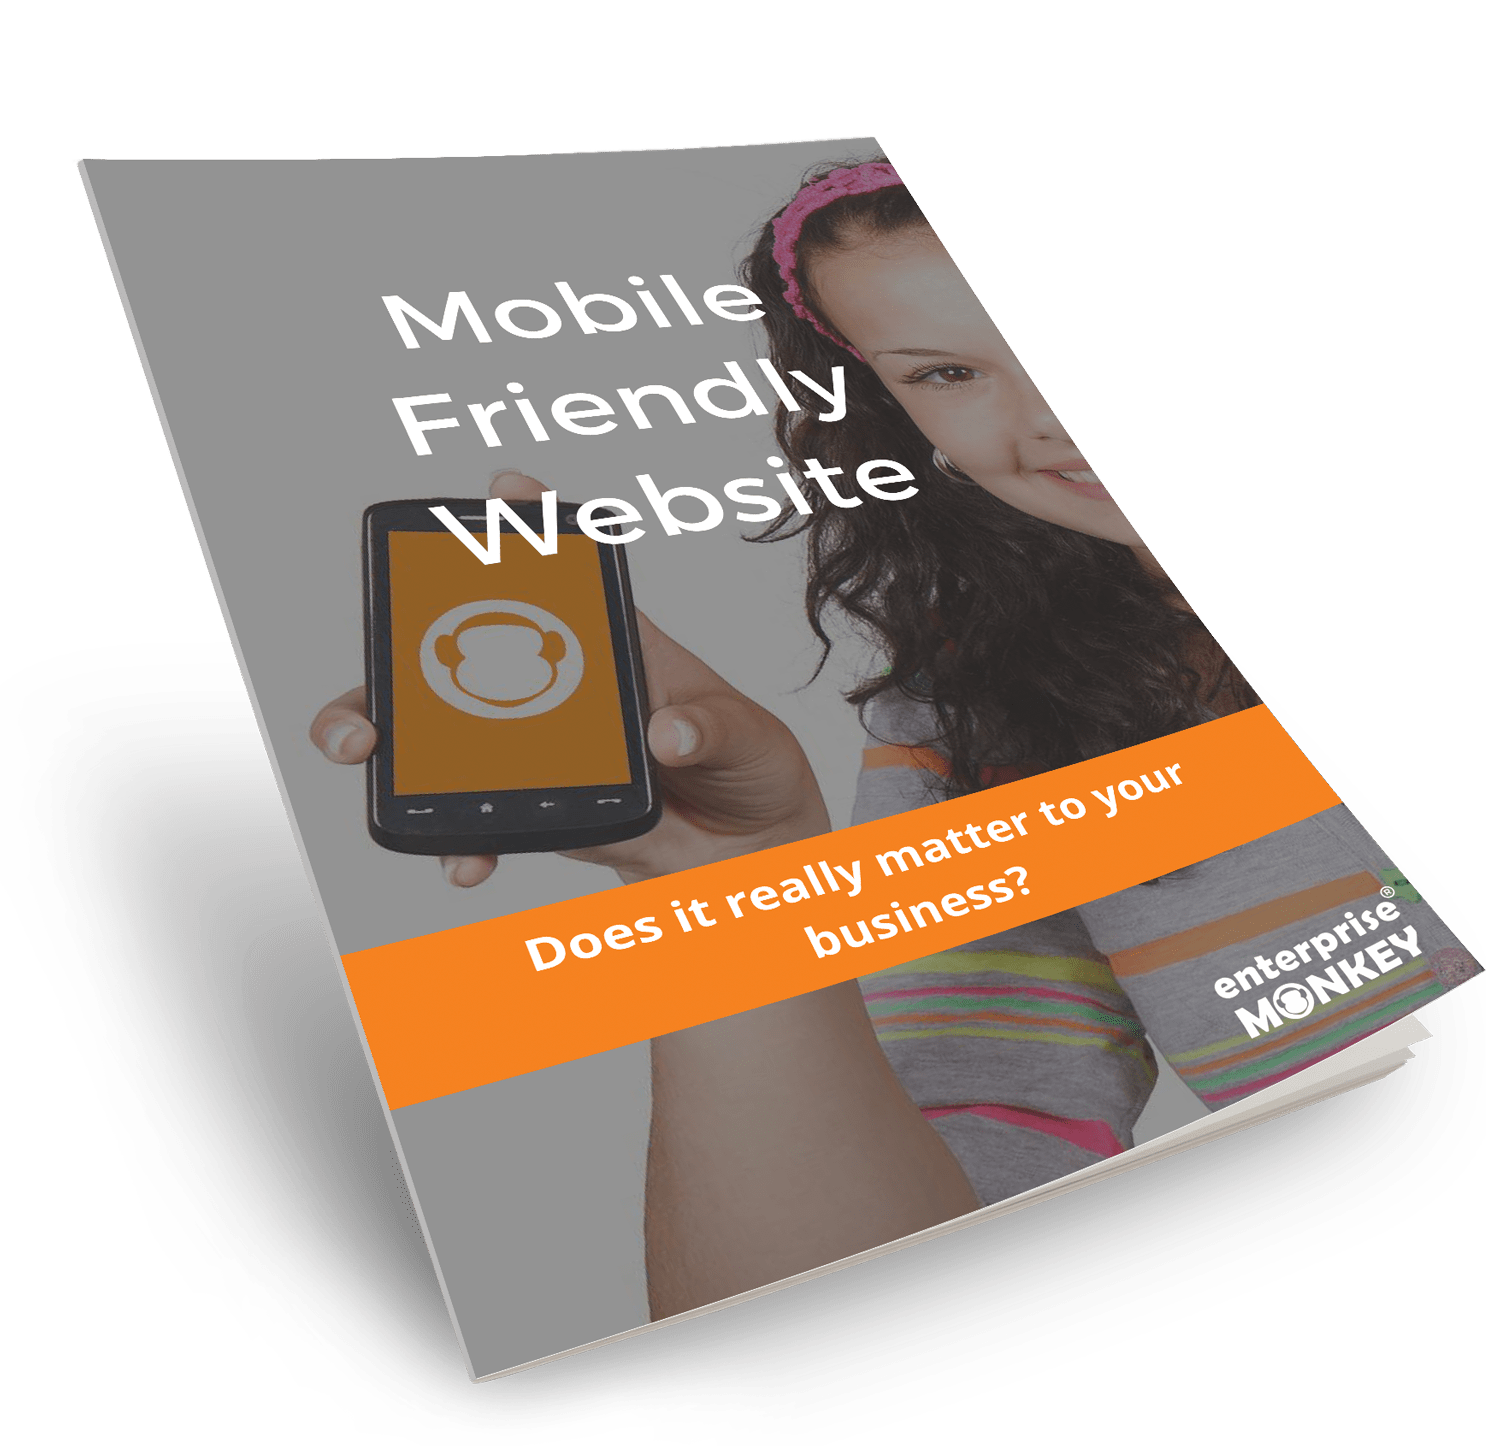 mobile-friendly-ebook-cover-min